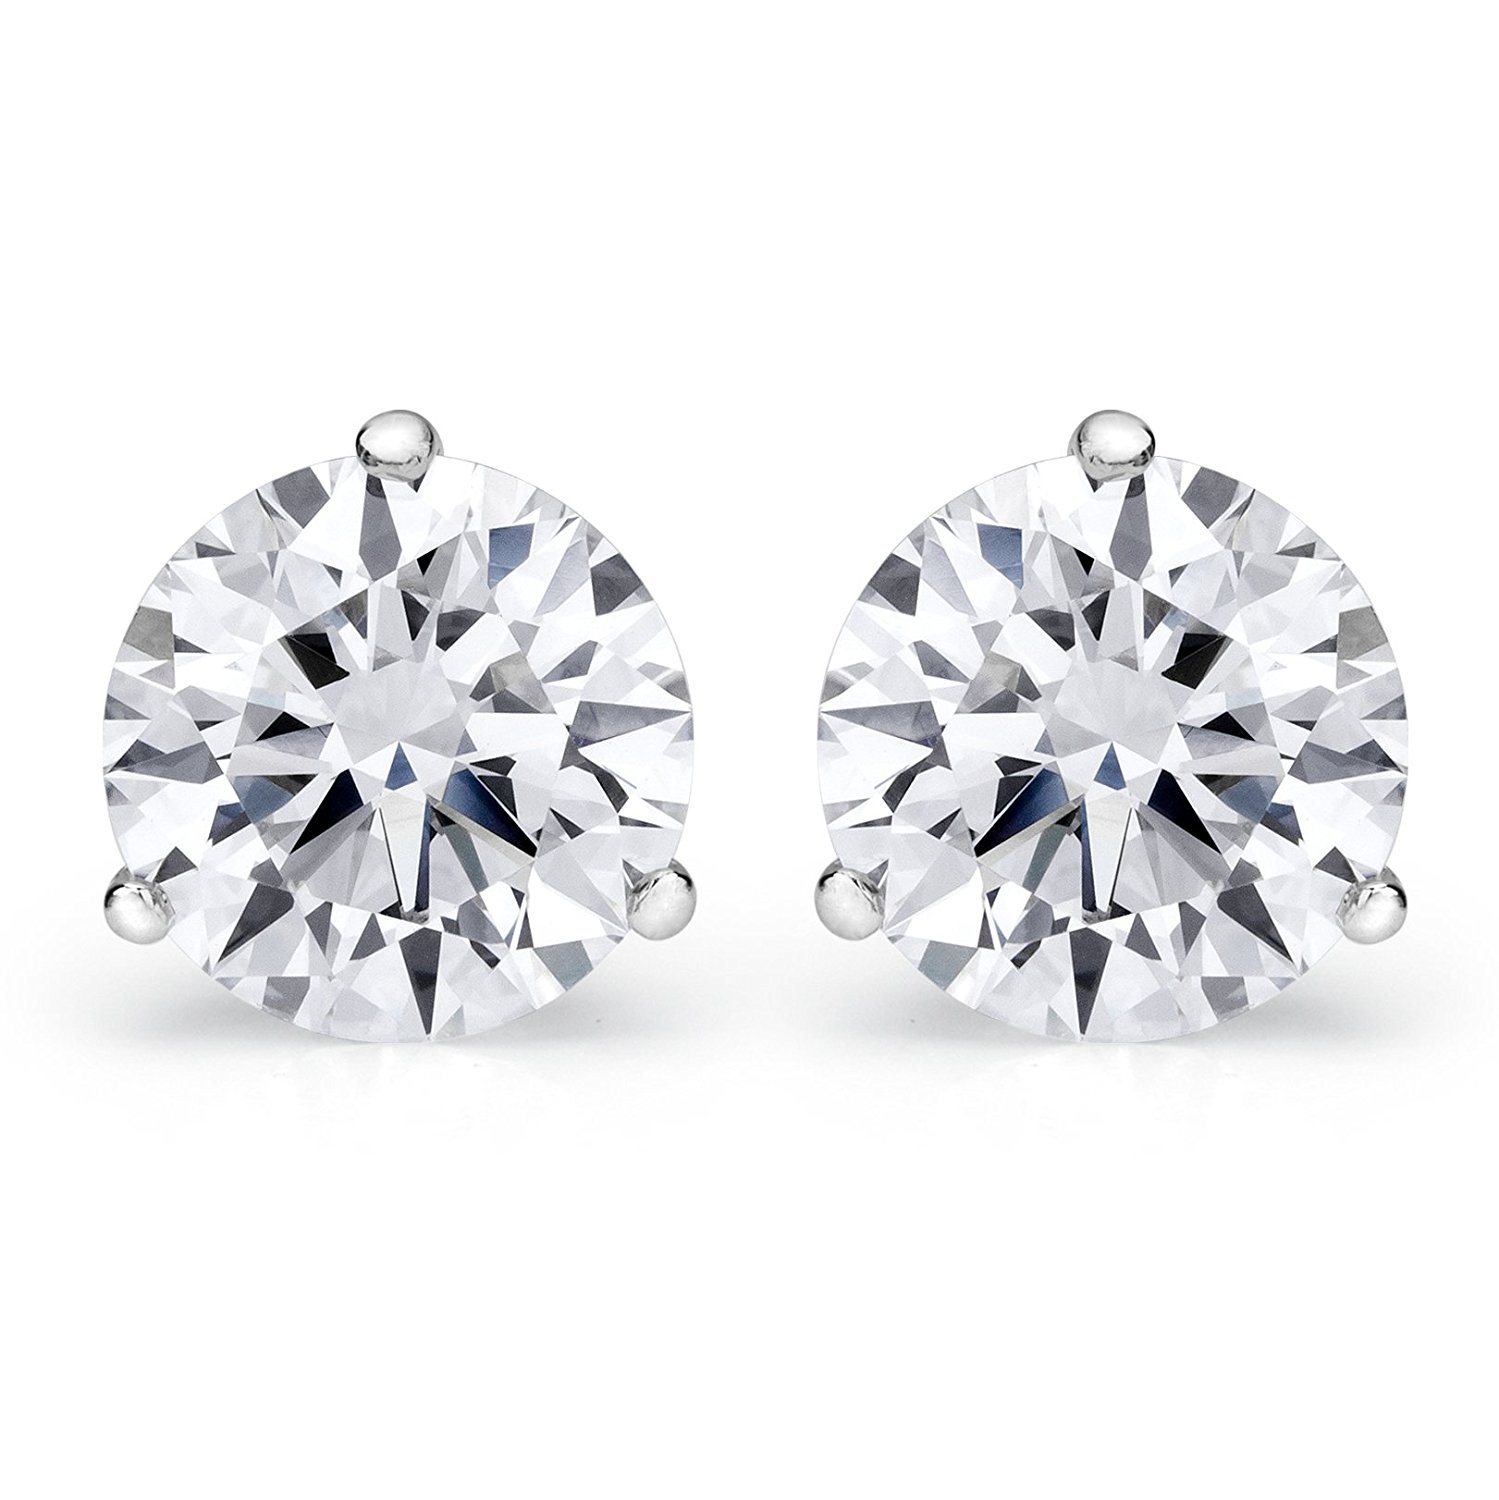 1/4 - 2 Carat GIA Certified Round Diamond Stud Earrings 3 Prong Push Back (D-E Color VS1-VS2 Clarity)